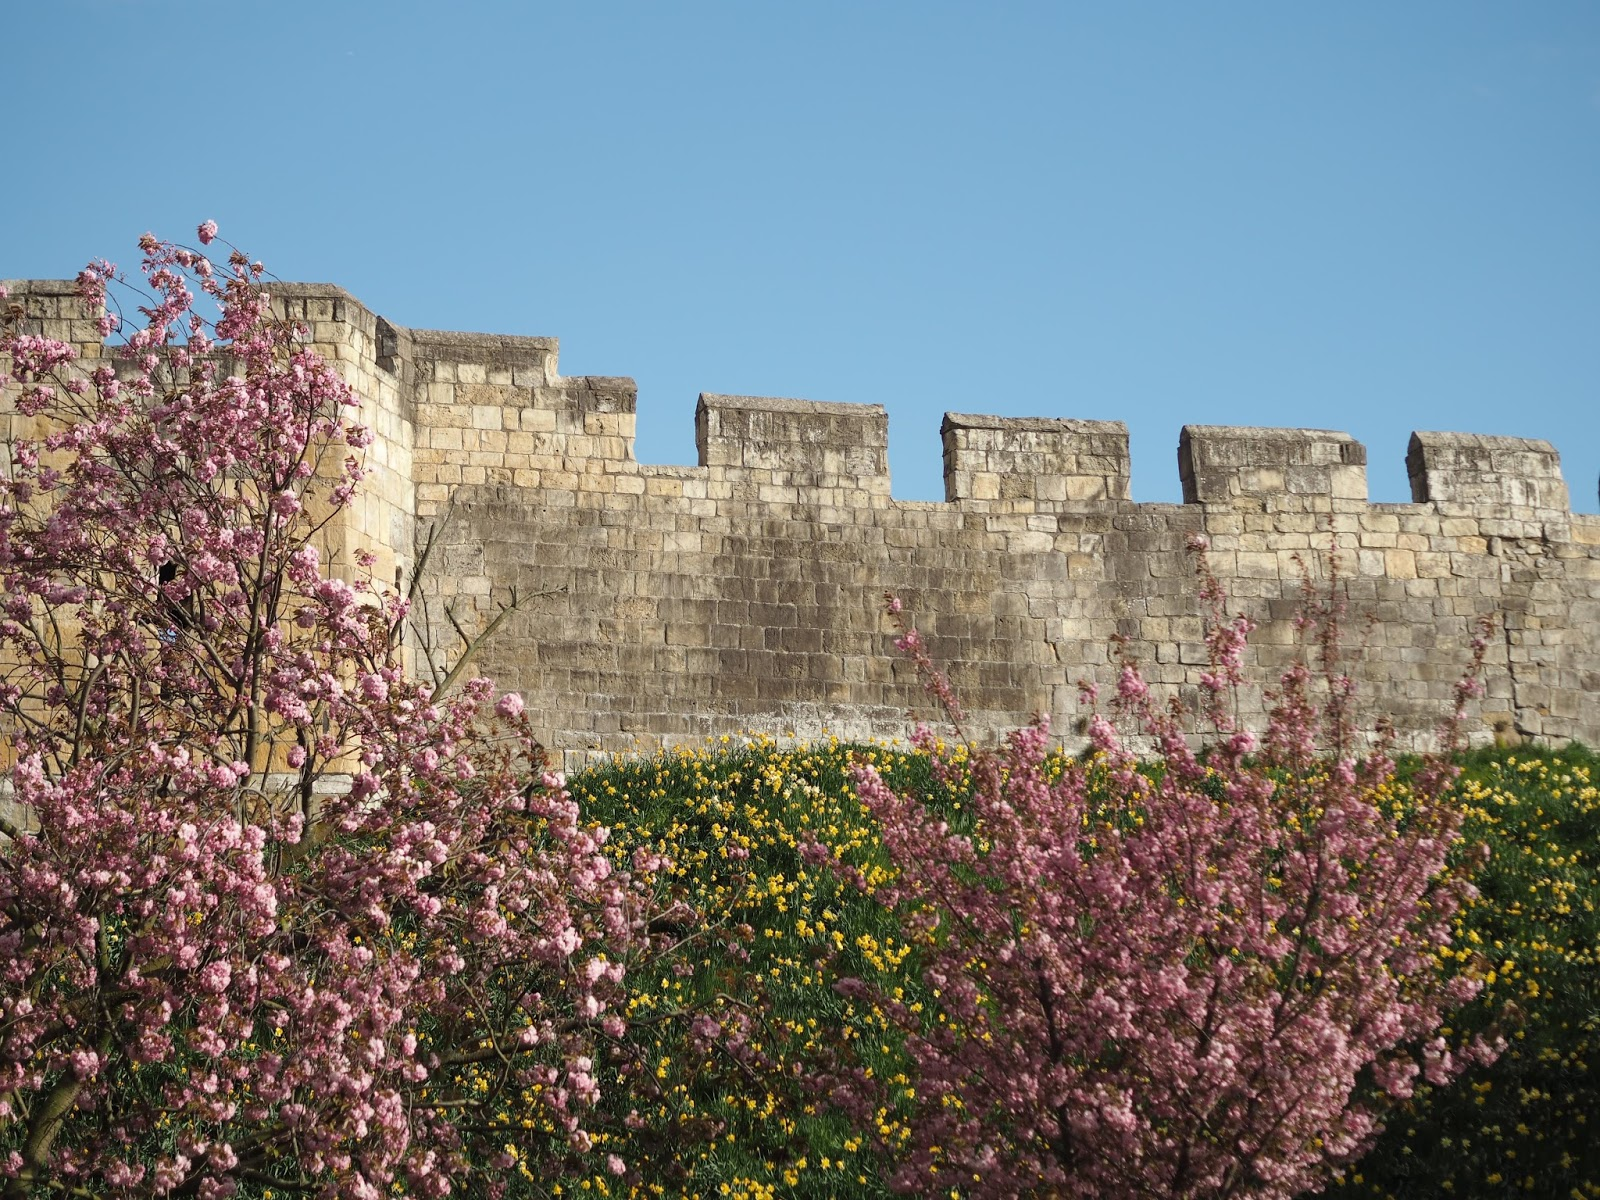 daffodils, cherry blossom and York city walls